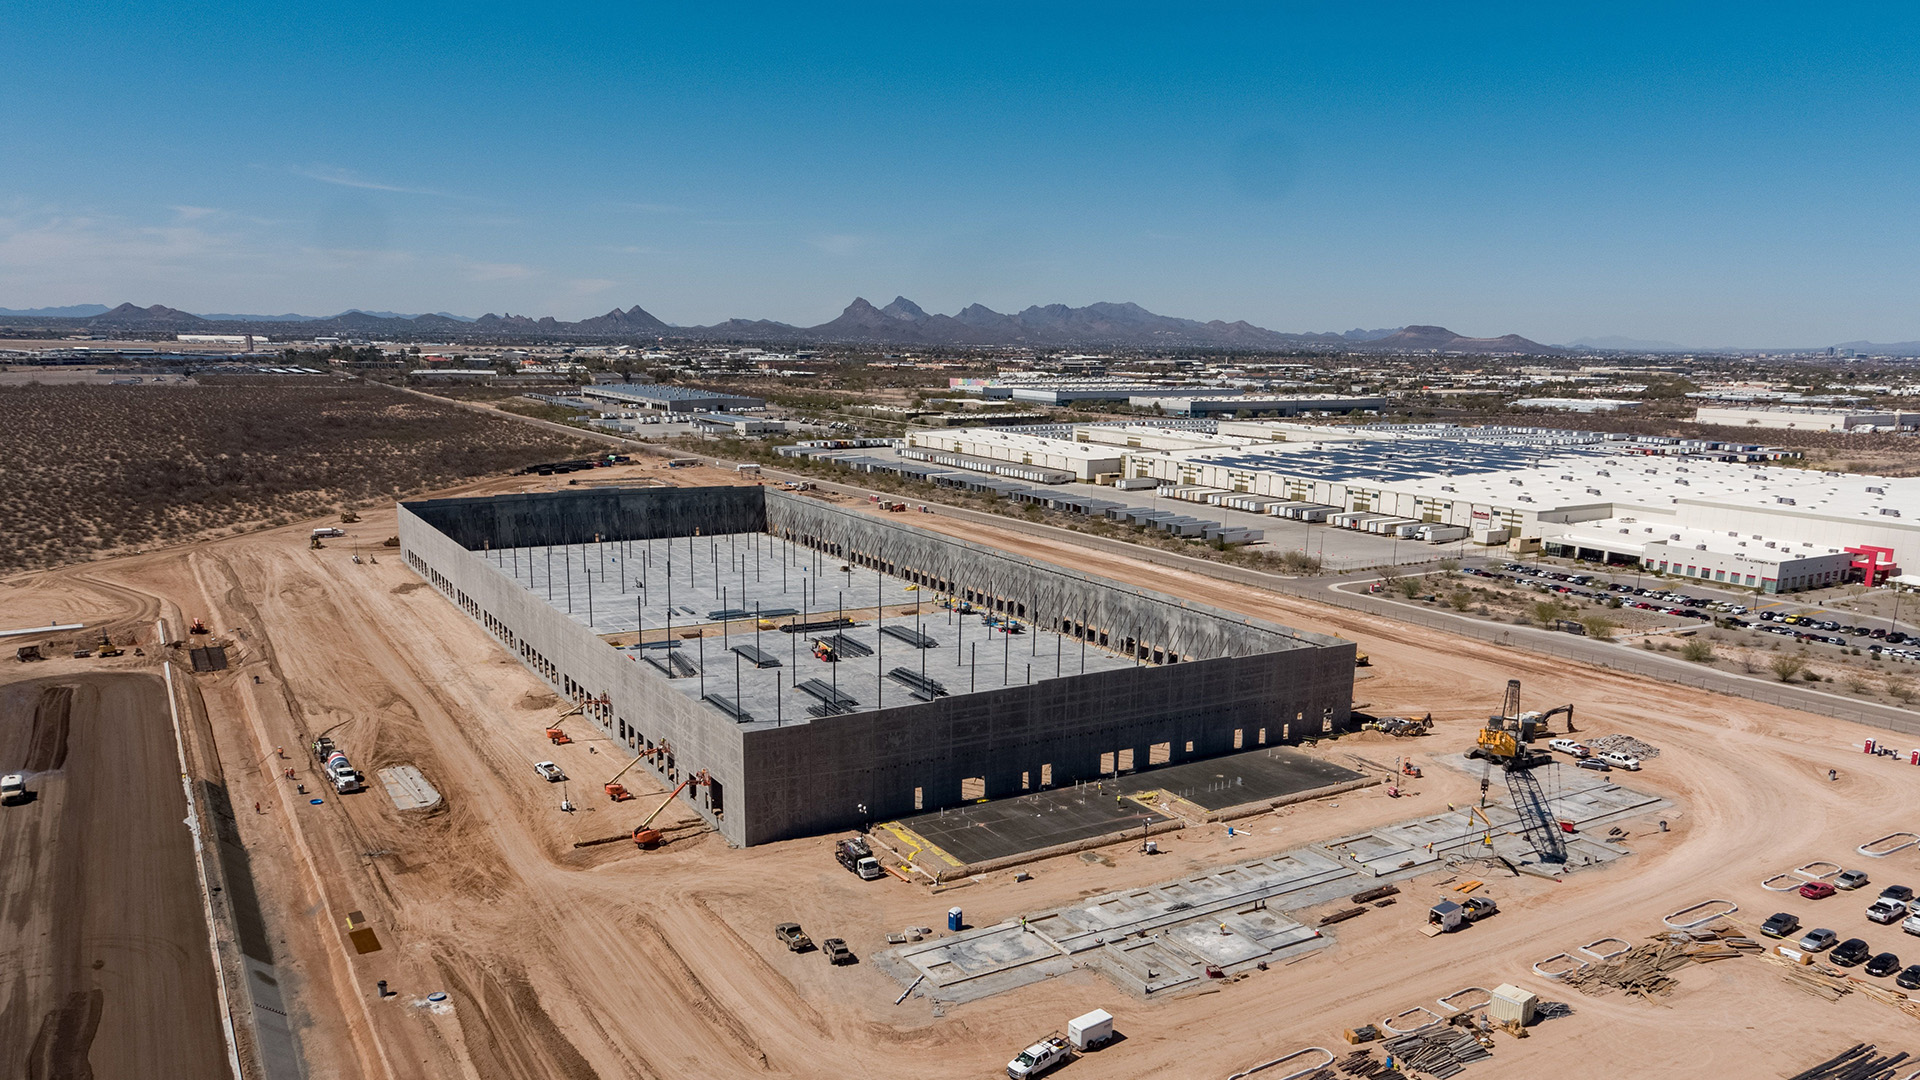 Amazon started construction on the new sort center in Tucson in January 2021.